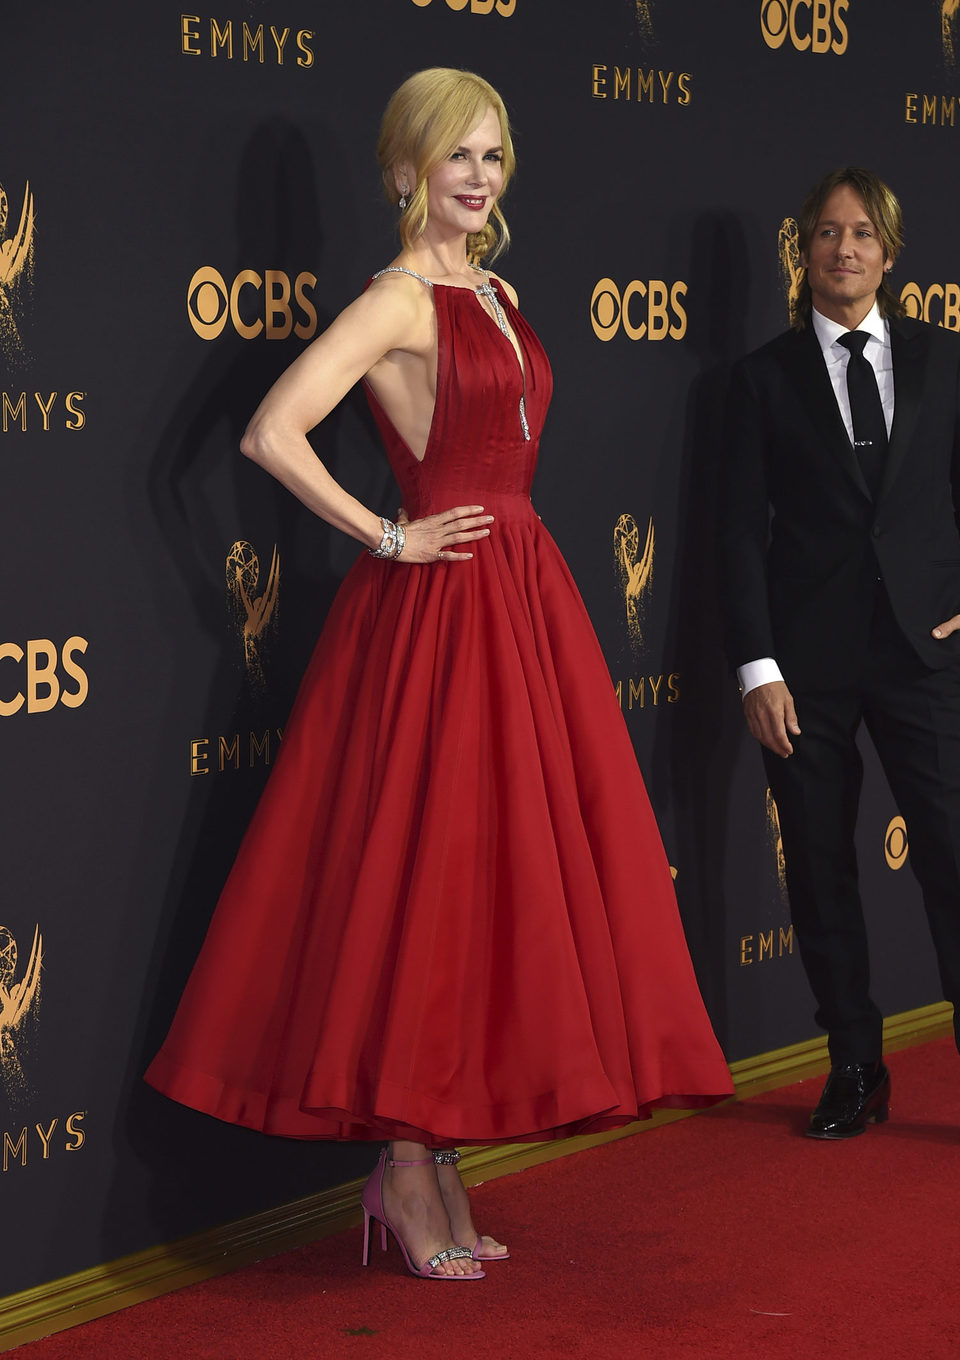 Nicole Kidman at the Emmys 2017 red carpet